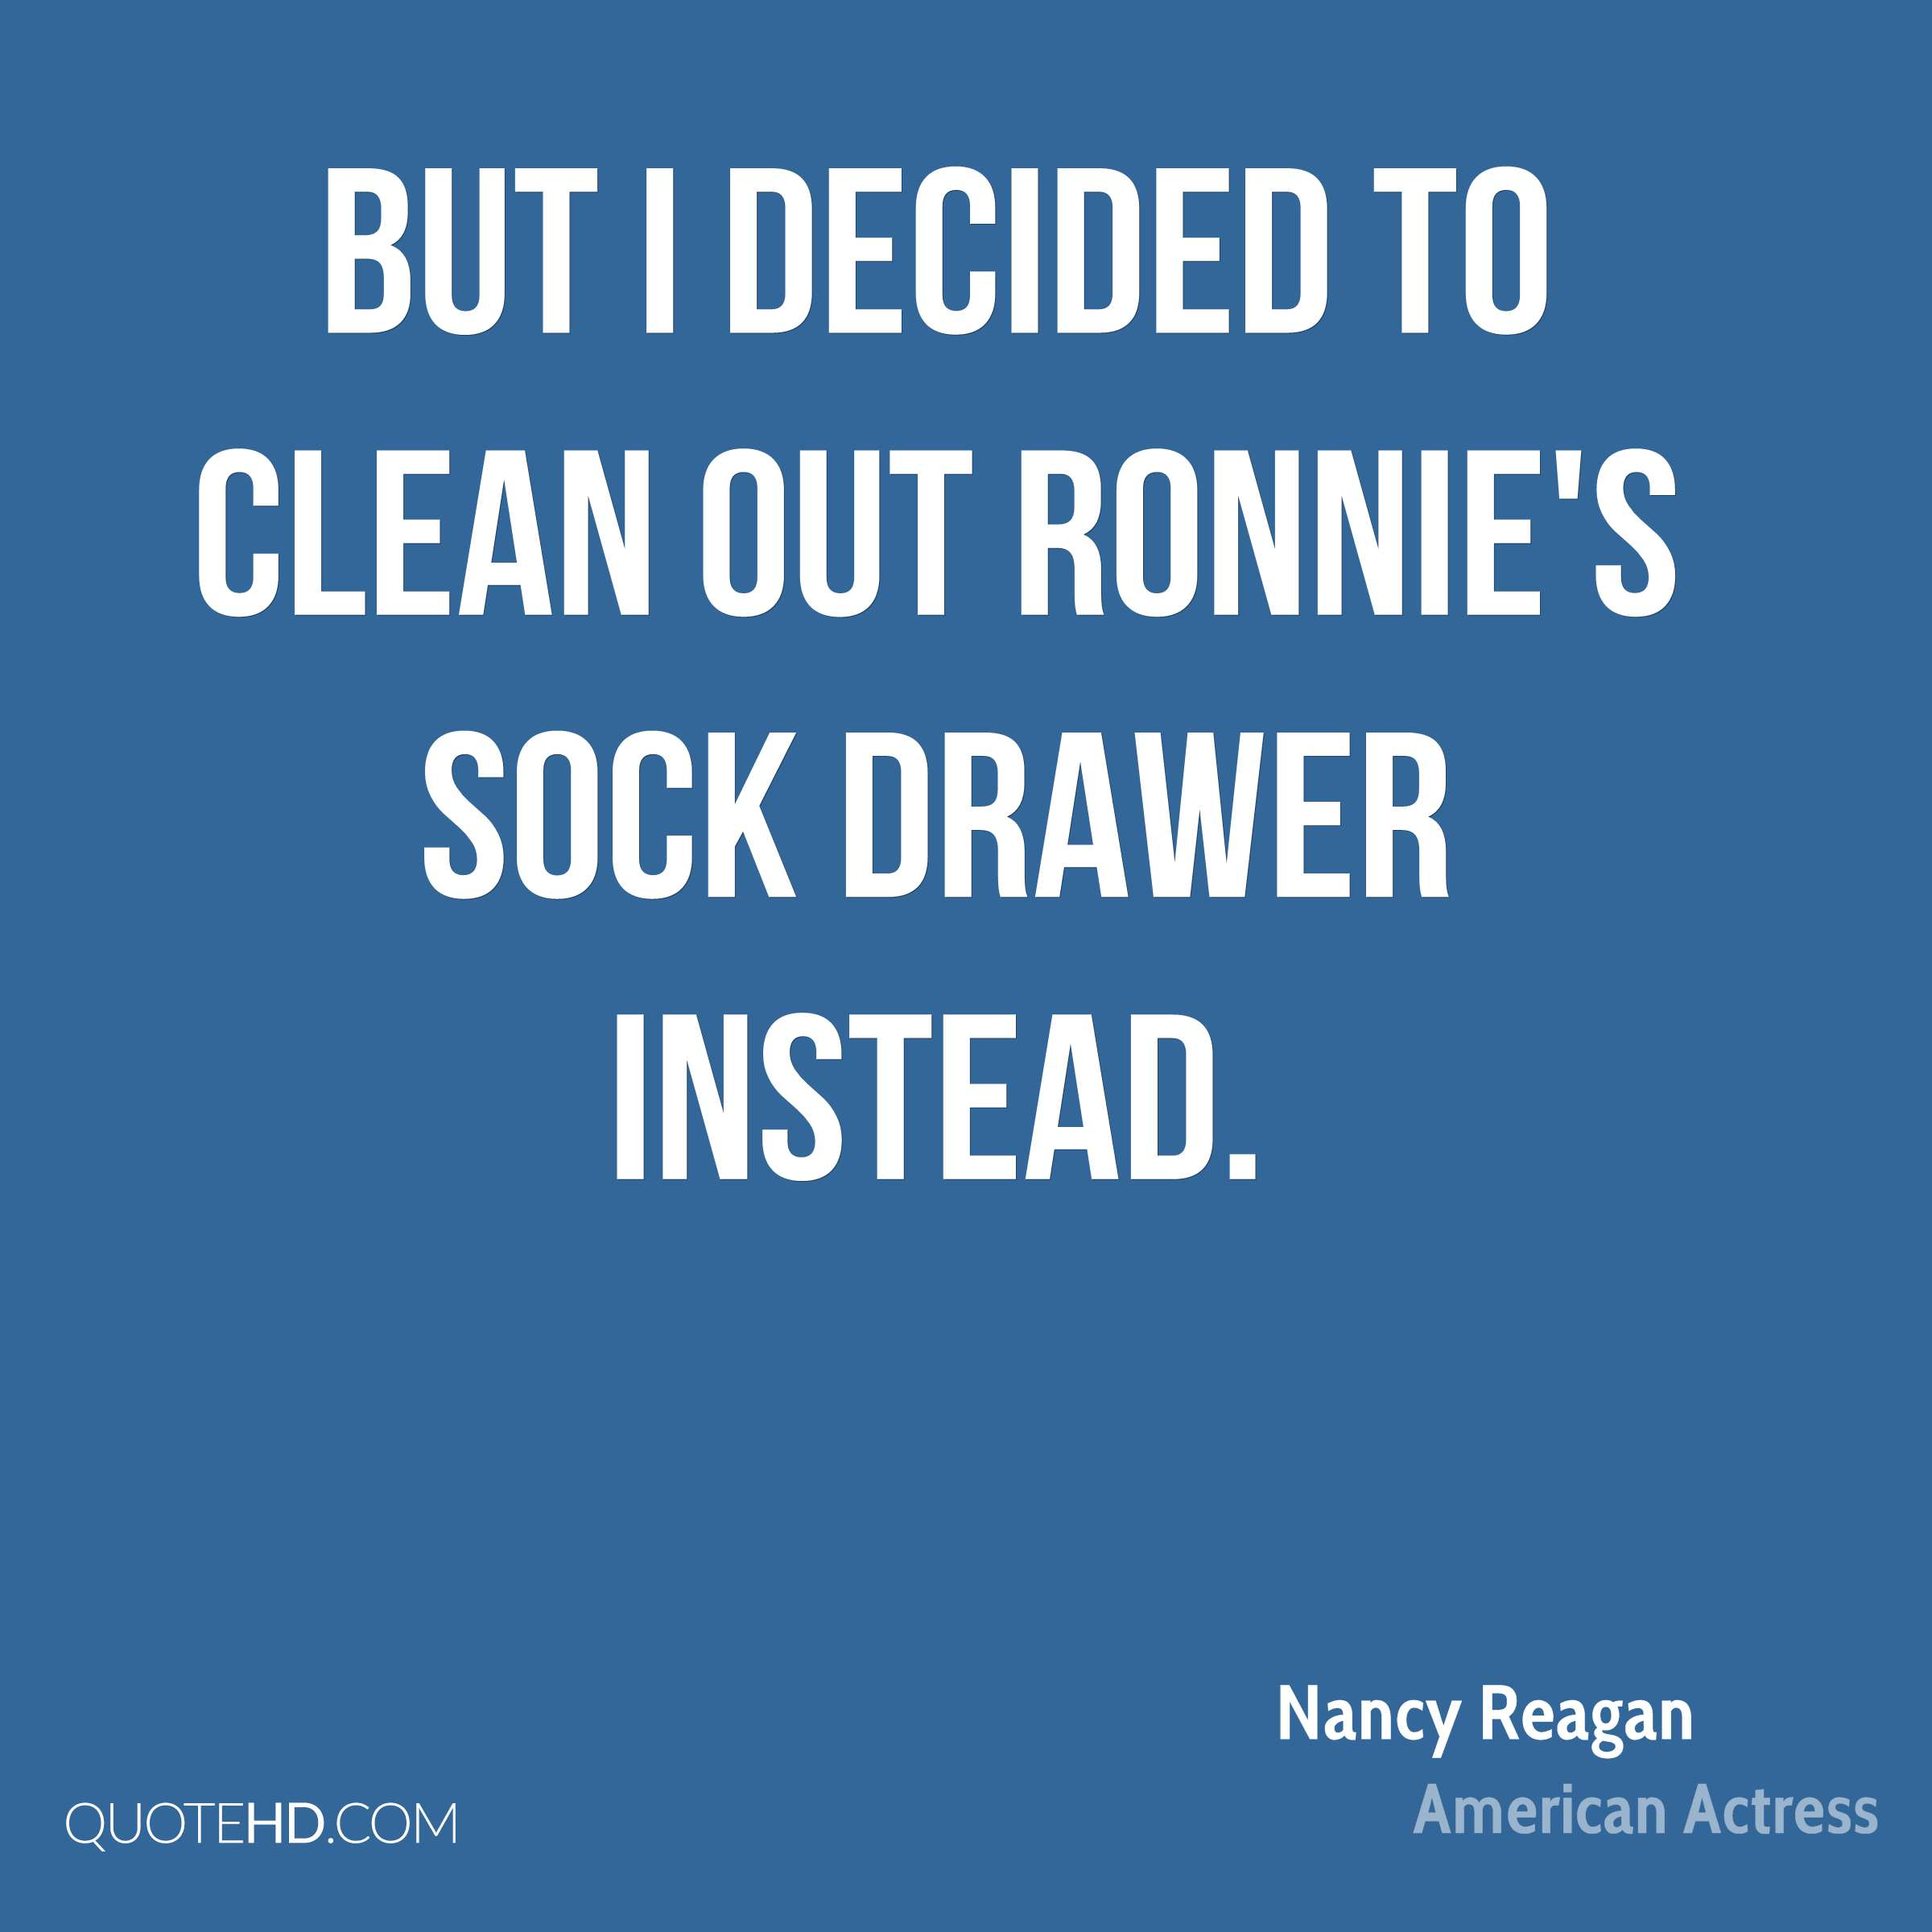 But I decided to clean out Ronnie's sock drawer instead.